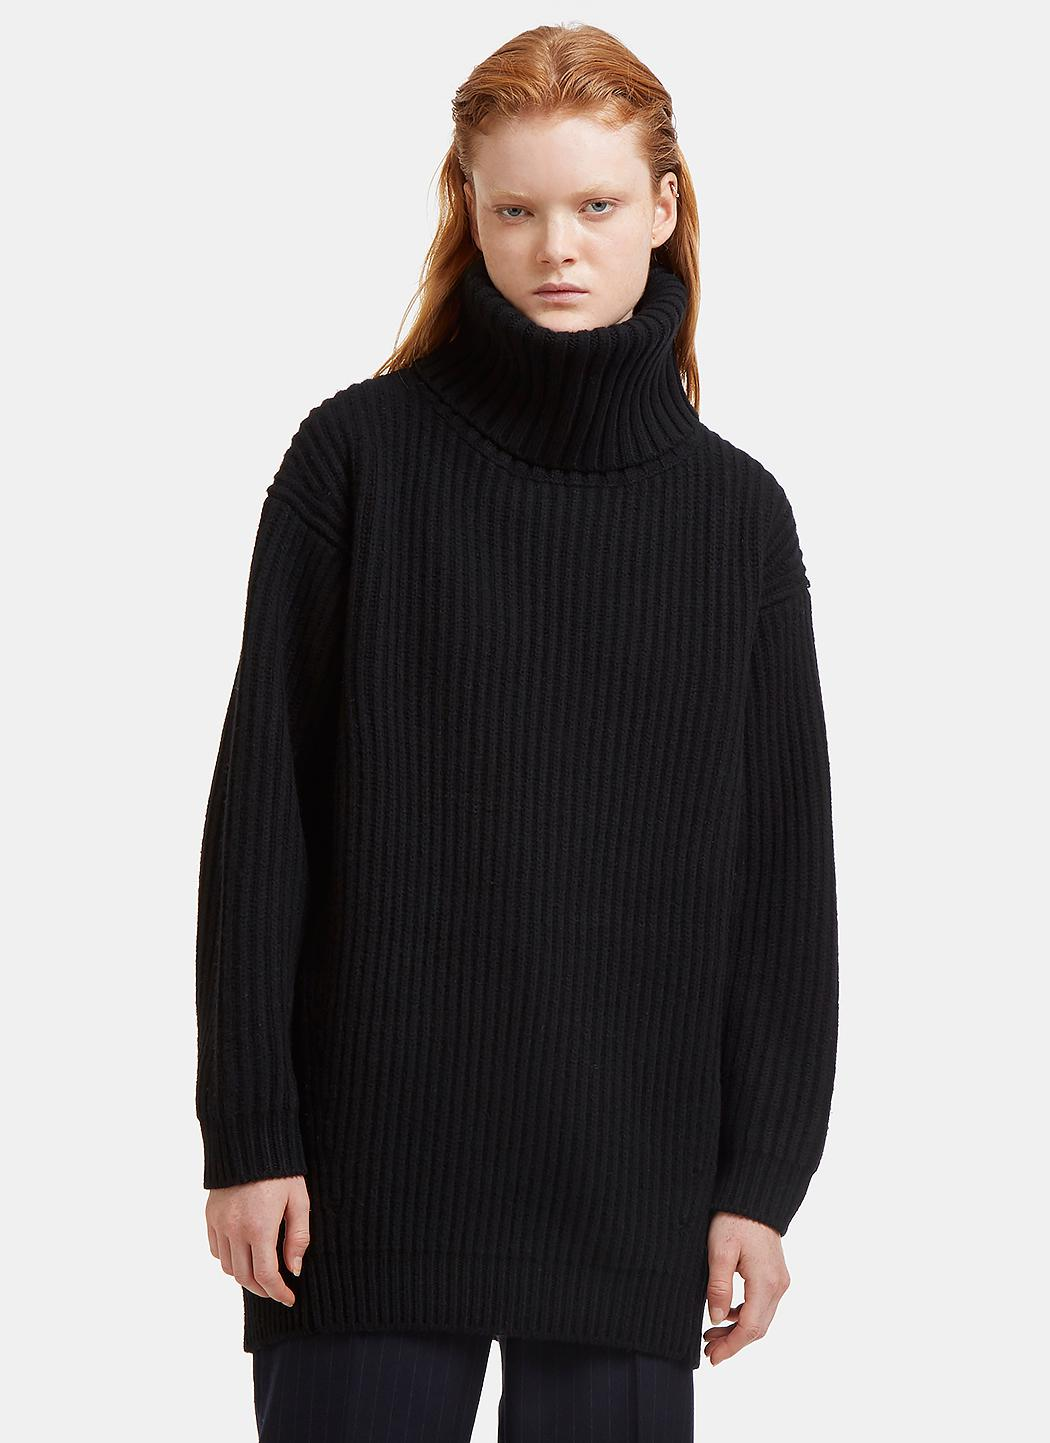 Acne Disa Oversized Ribbed Knit Sweater In Black in Black | Lyst